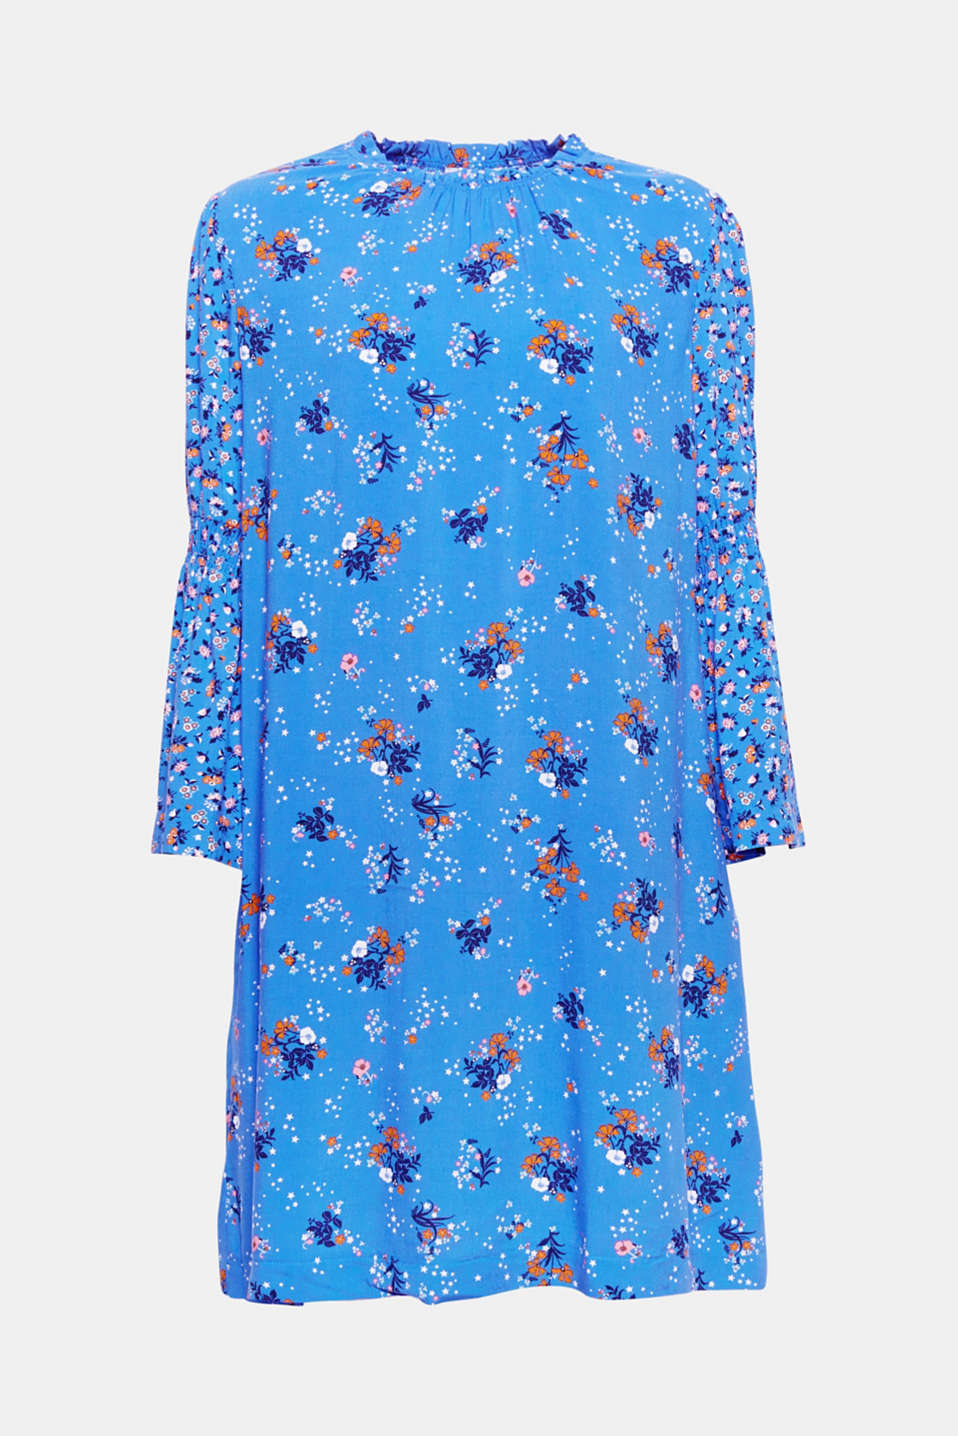 This dress, which features a figure-skimming A-line silhouette, fashionable trumpet sleeves and a mix of floral and star patterns, is a trendy favourite piece.